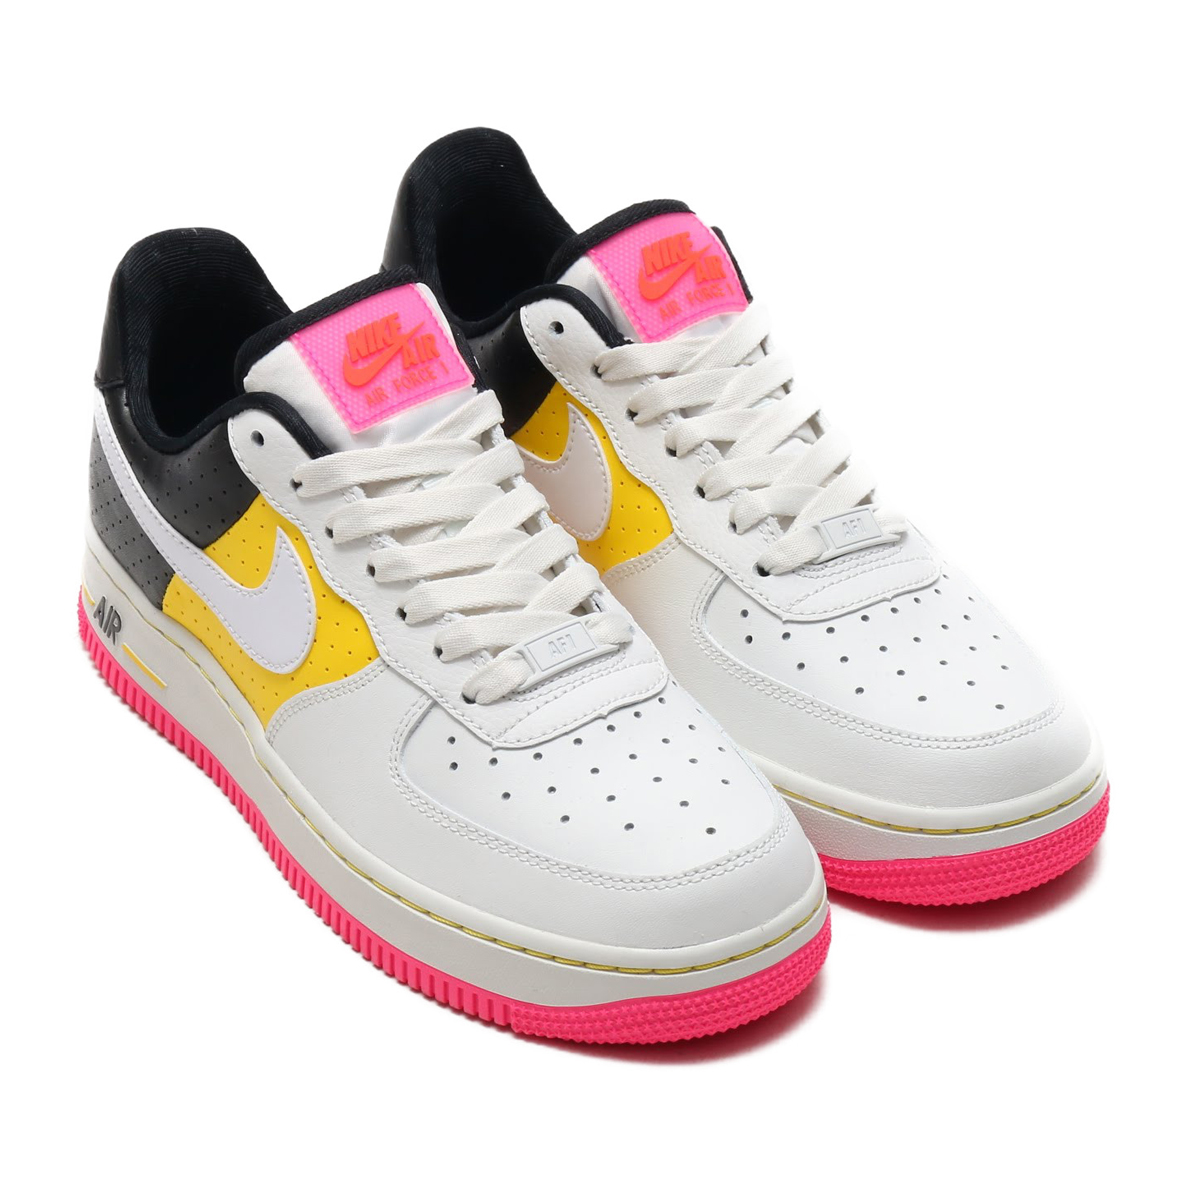 18ebc6a046a NIKE W AIR FORCE 1  07 SE MOTO (Nike women air force 1 07 SE MOTO) (SUMMIT  WHITE WHITE-TOUR YELLOW-BLACK) 18SU-S